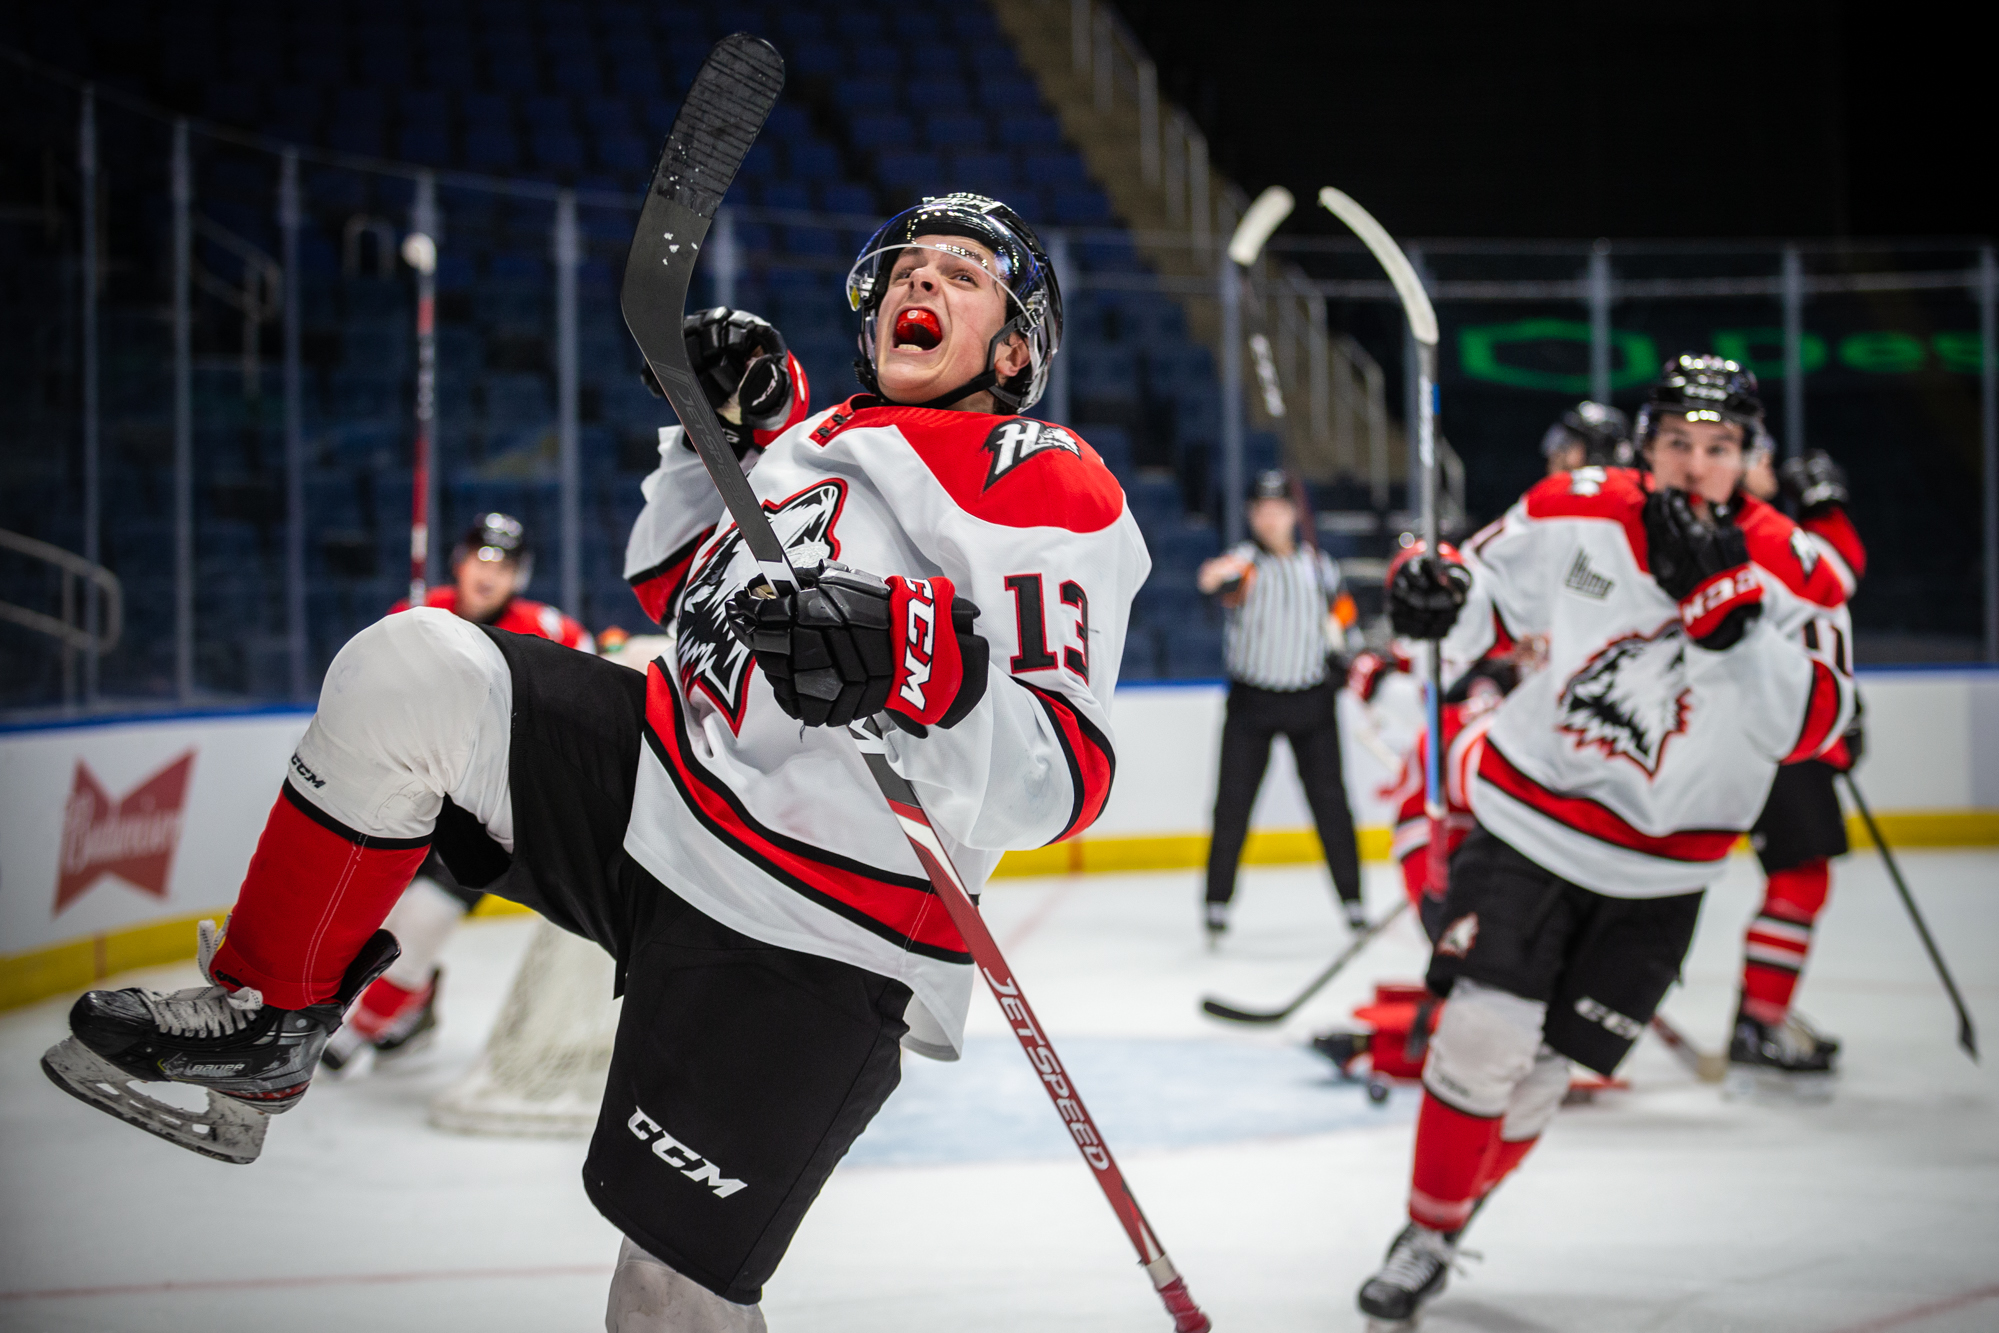 Alex Arsenault Huskies Rouyn-Noranda